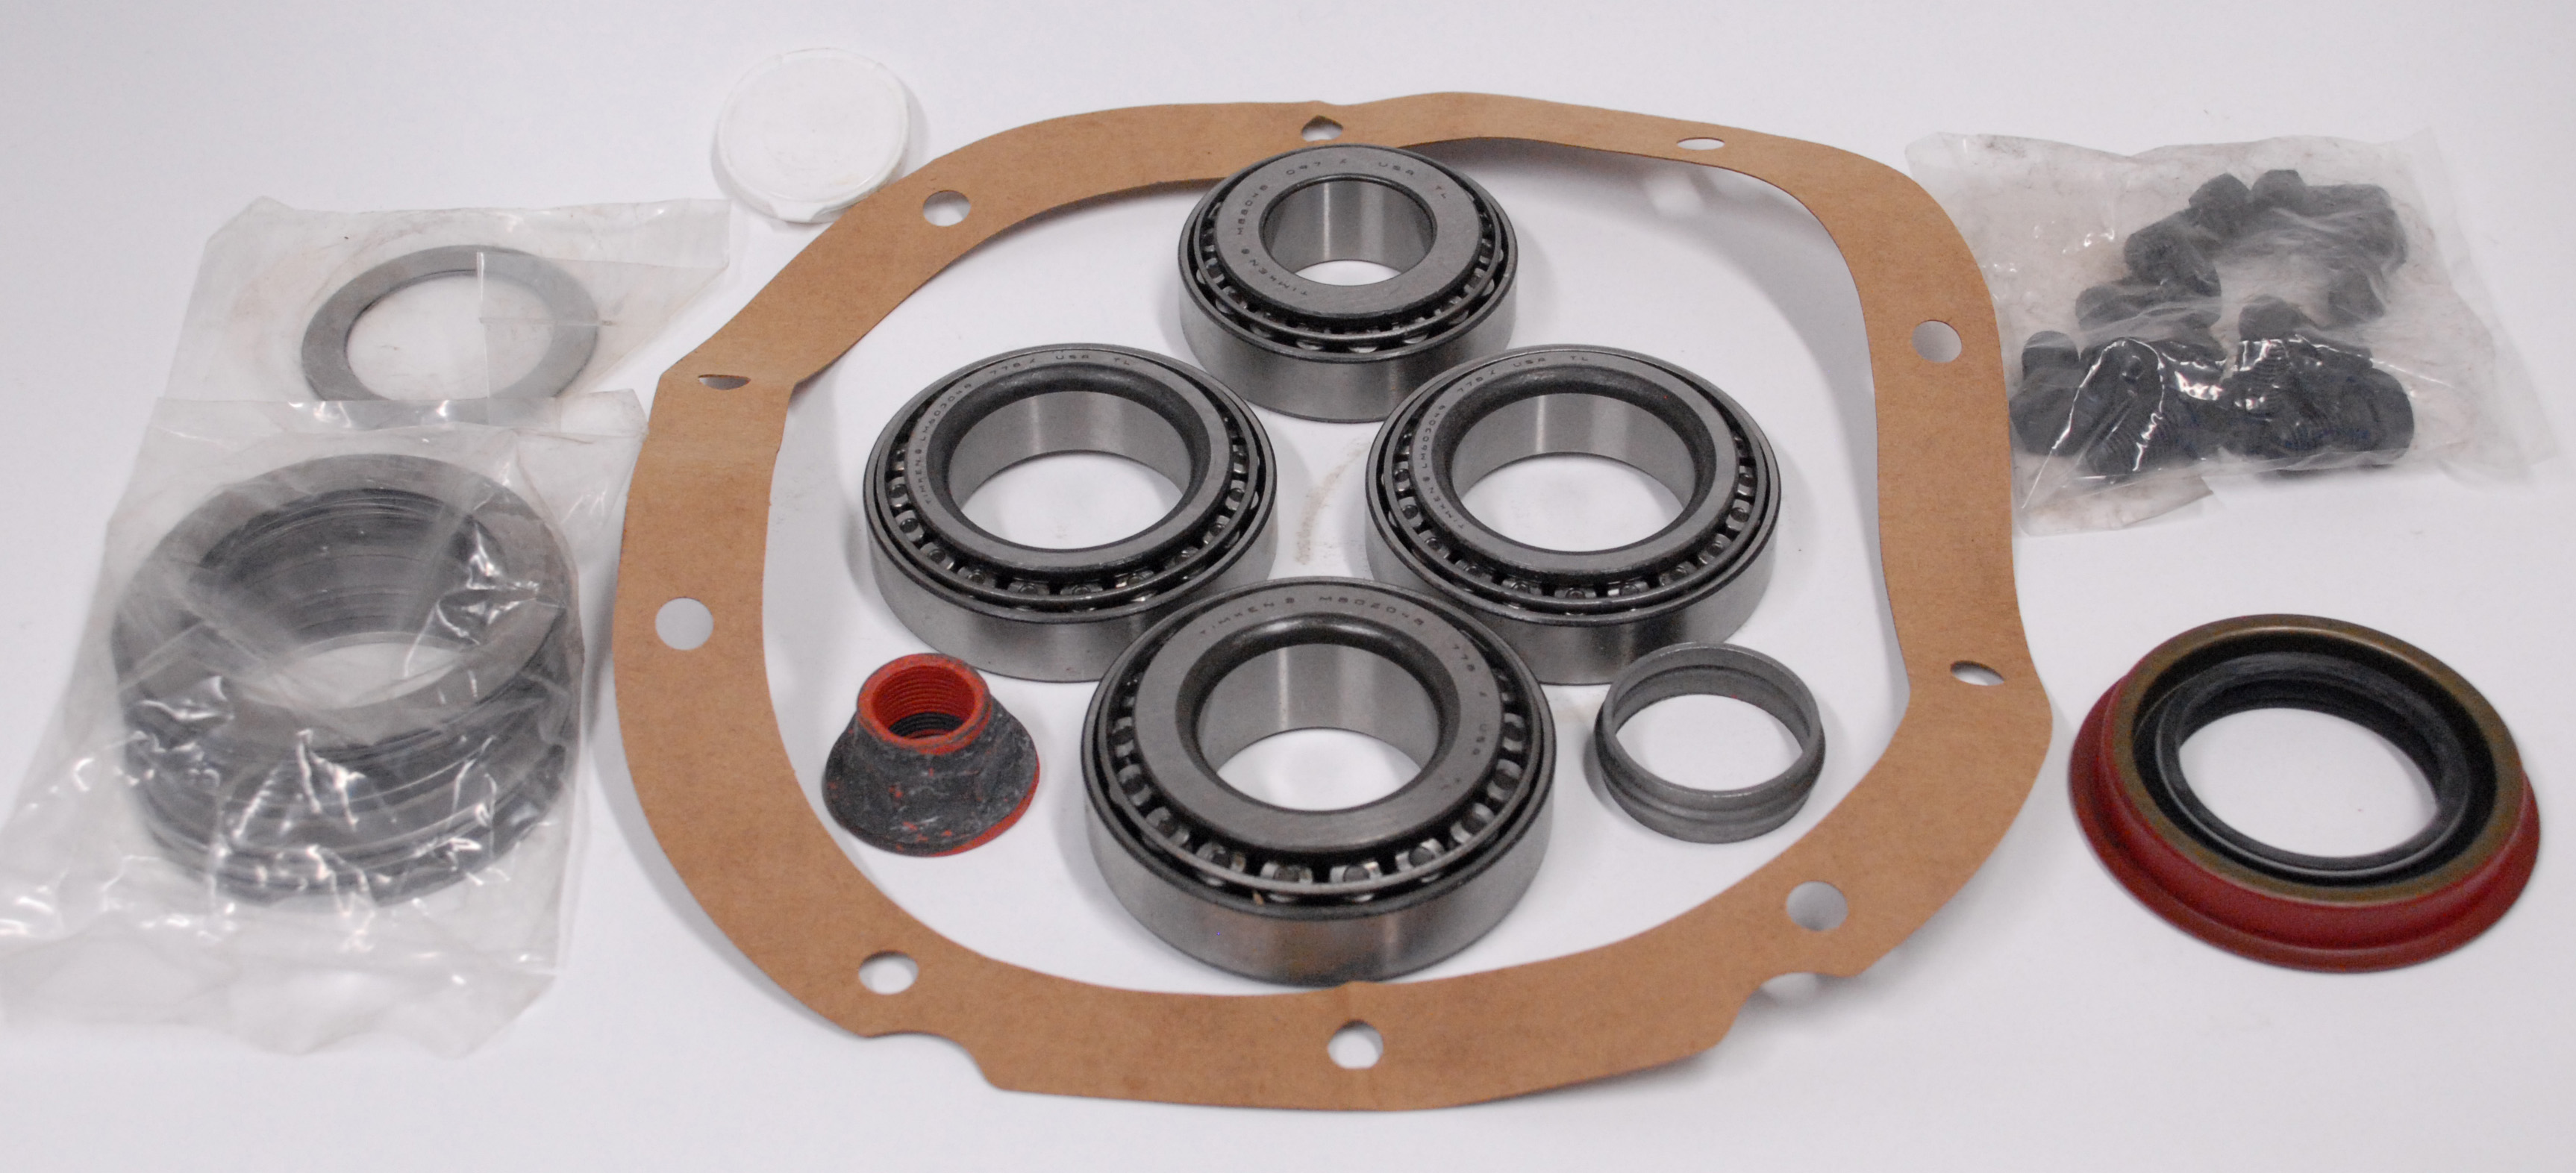 "R88 - 8.8"" Ford Setup Kit"